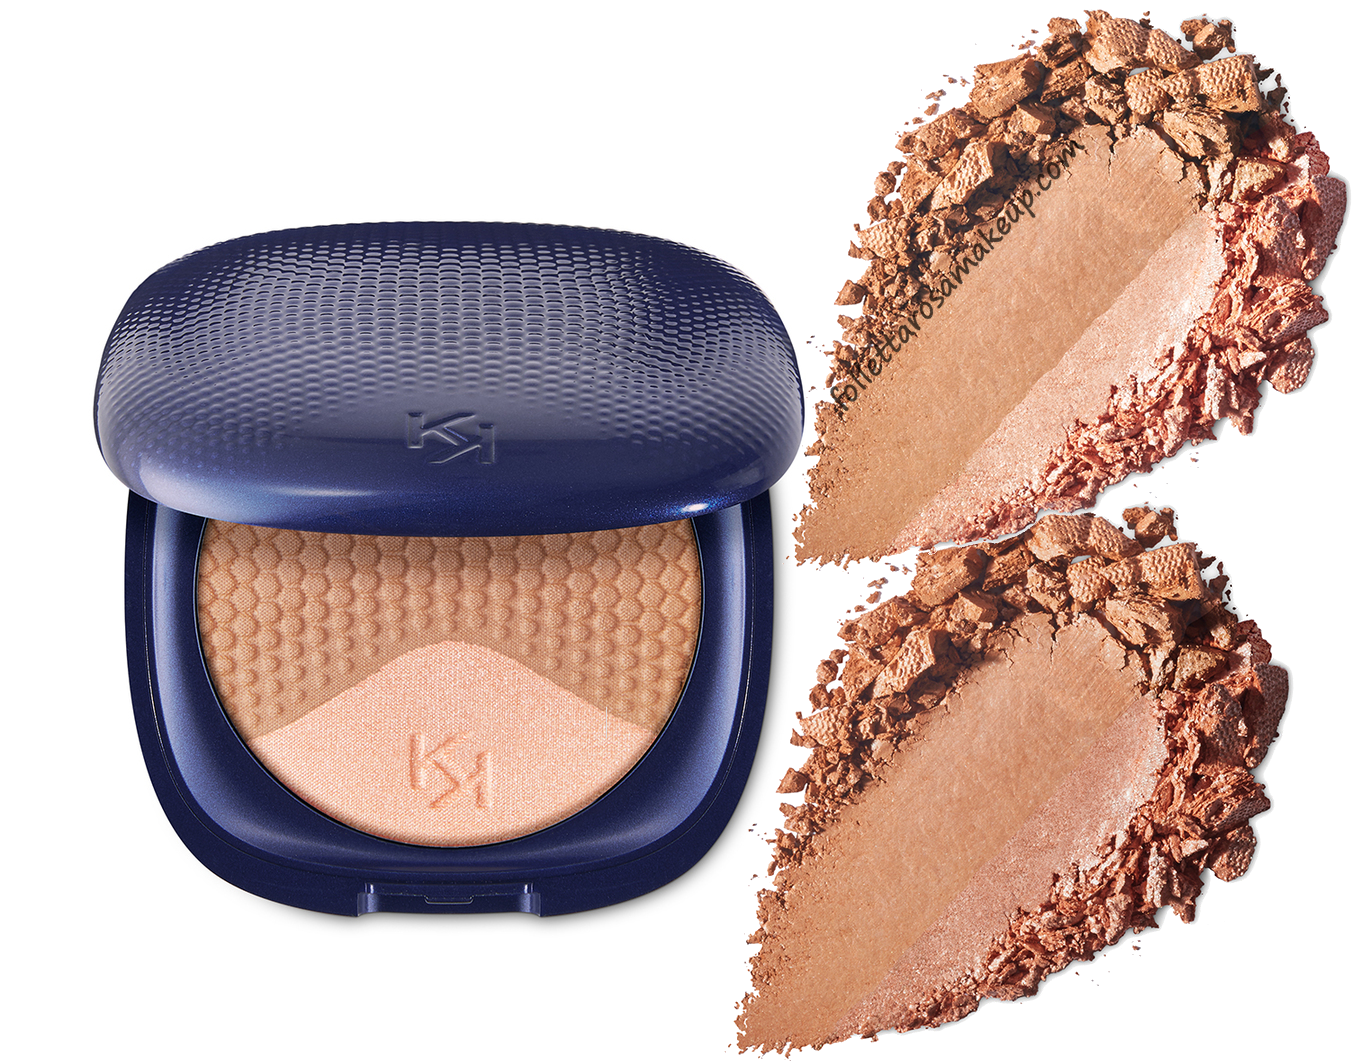 duo-bronzer-kiko-fall2017